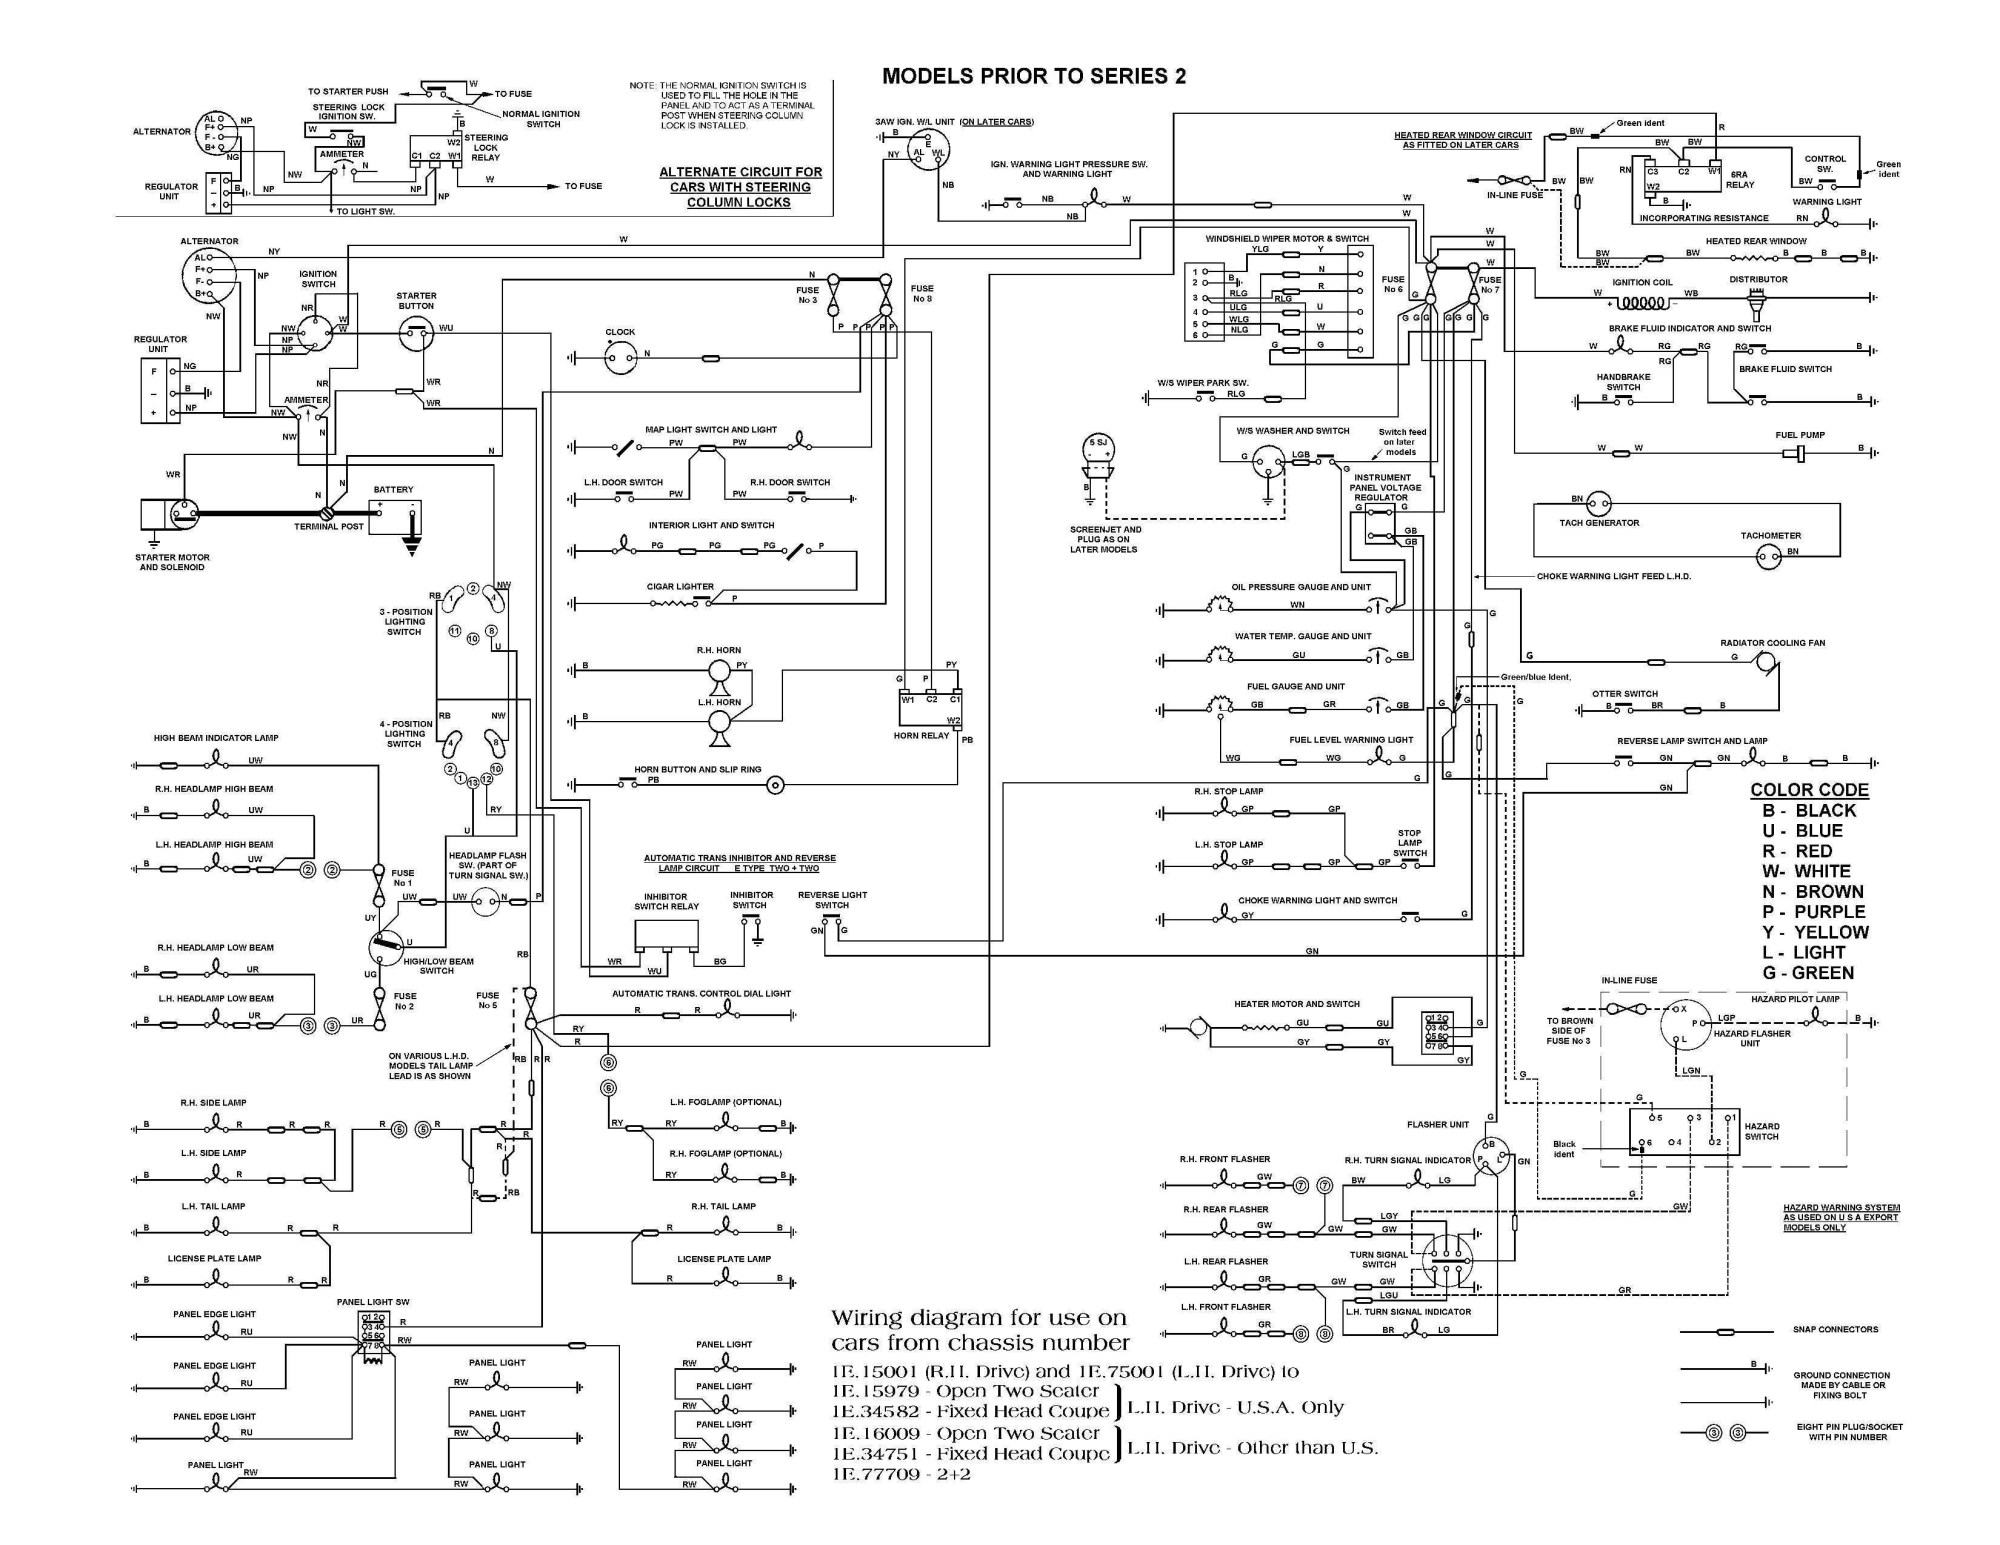 hight resolution of wiring diagram software open source download wiring diagram software open source best ponent wire symbols download wiring diagram